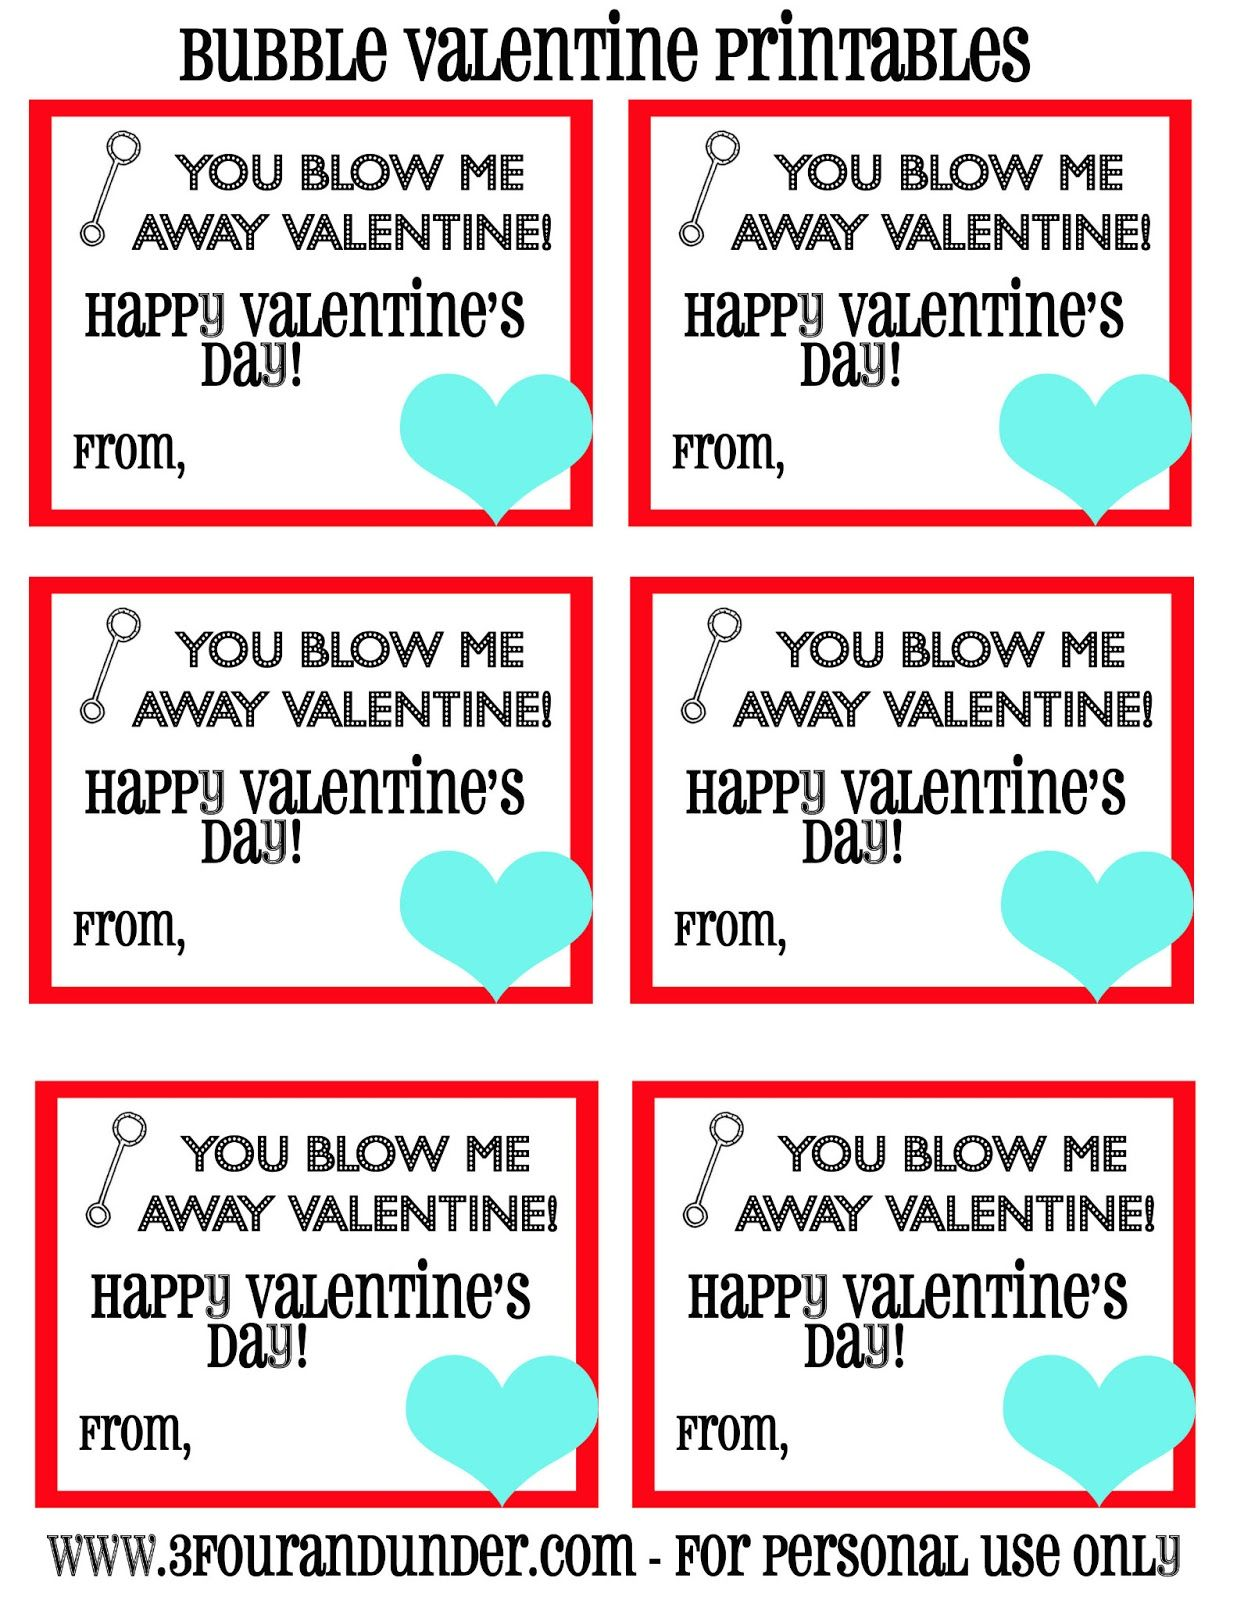 Blow Me Away Valentine Printable 1 237 1 600 Pixels